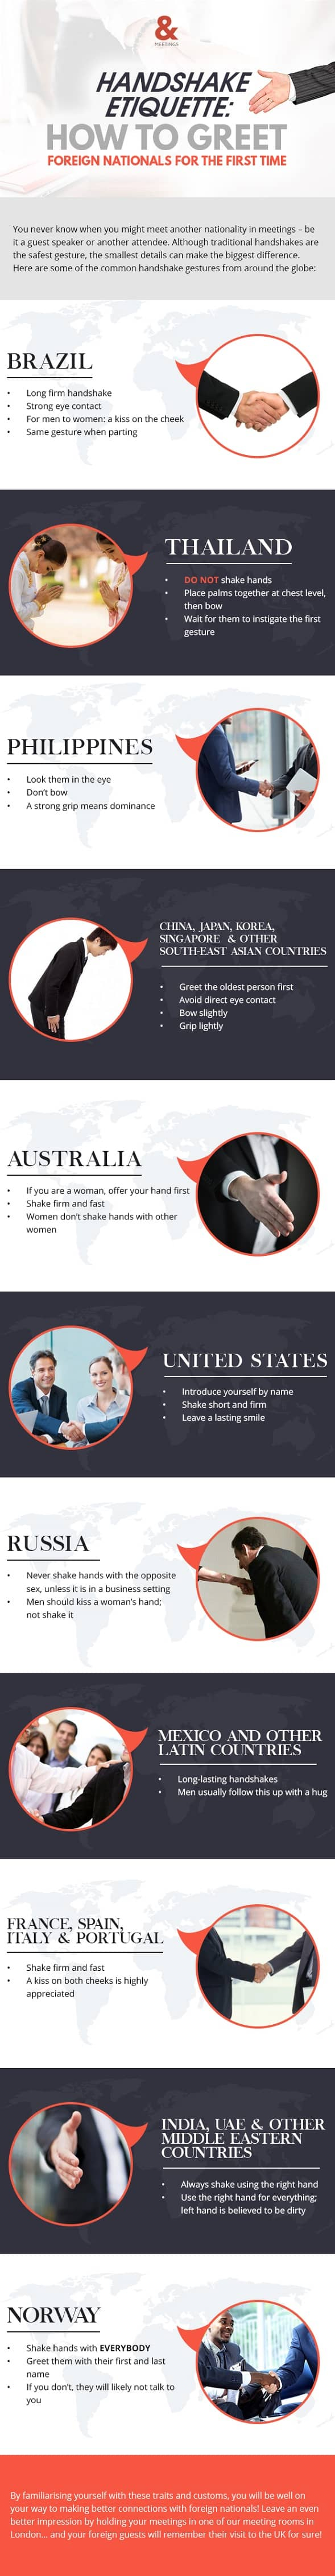 Handshake etiquette: How to greet foreign nationals for the first time